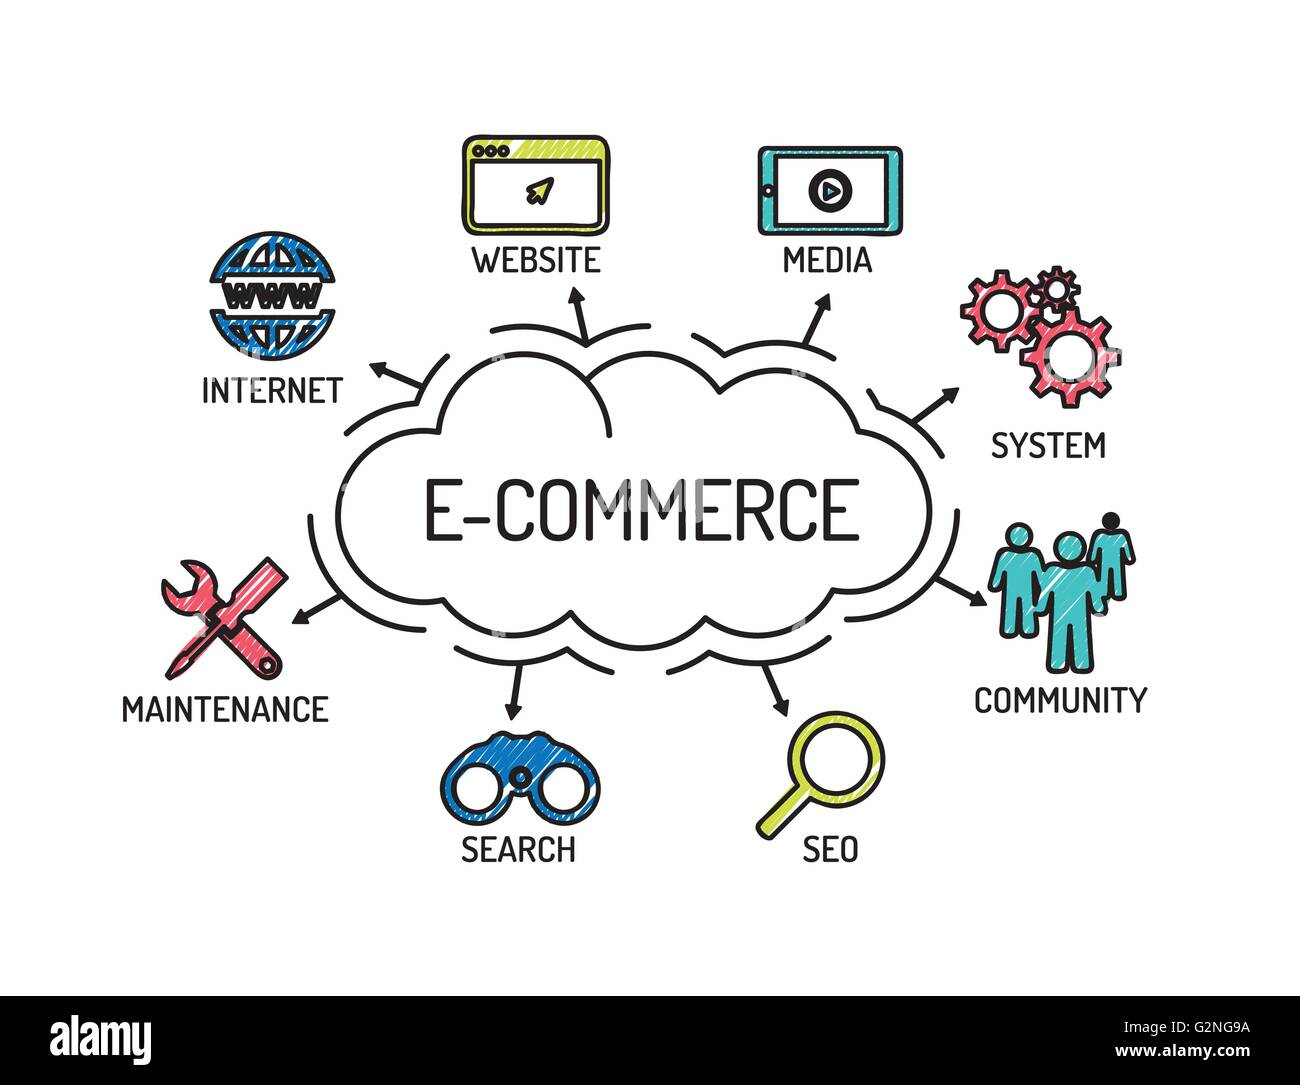 an analysis of the description of e commerce View the e-commerce specialist course description including course topics, target audience, and prerequisites.